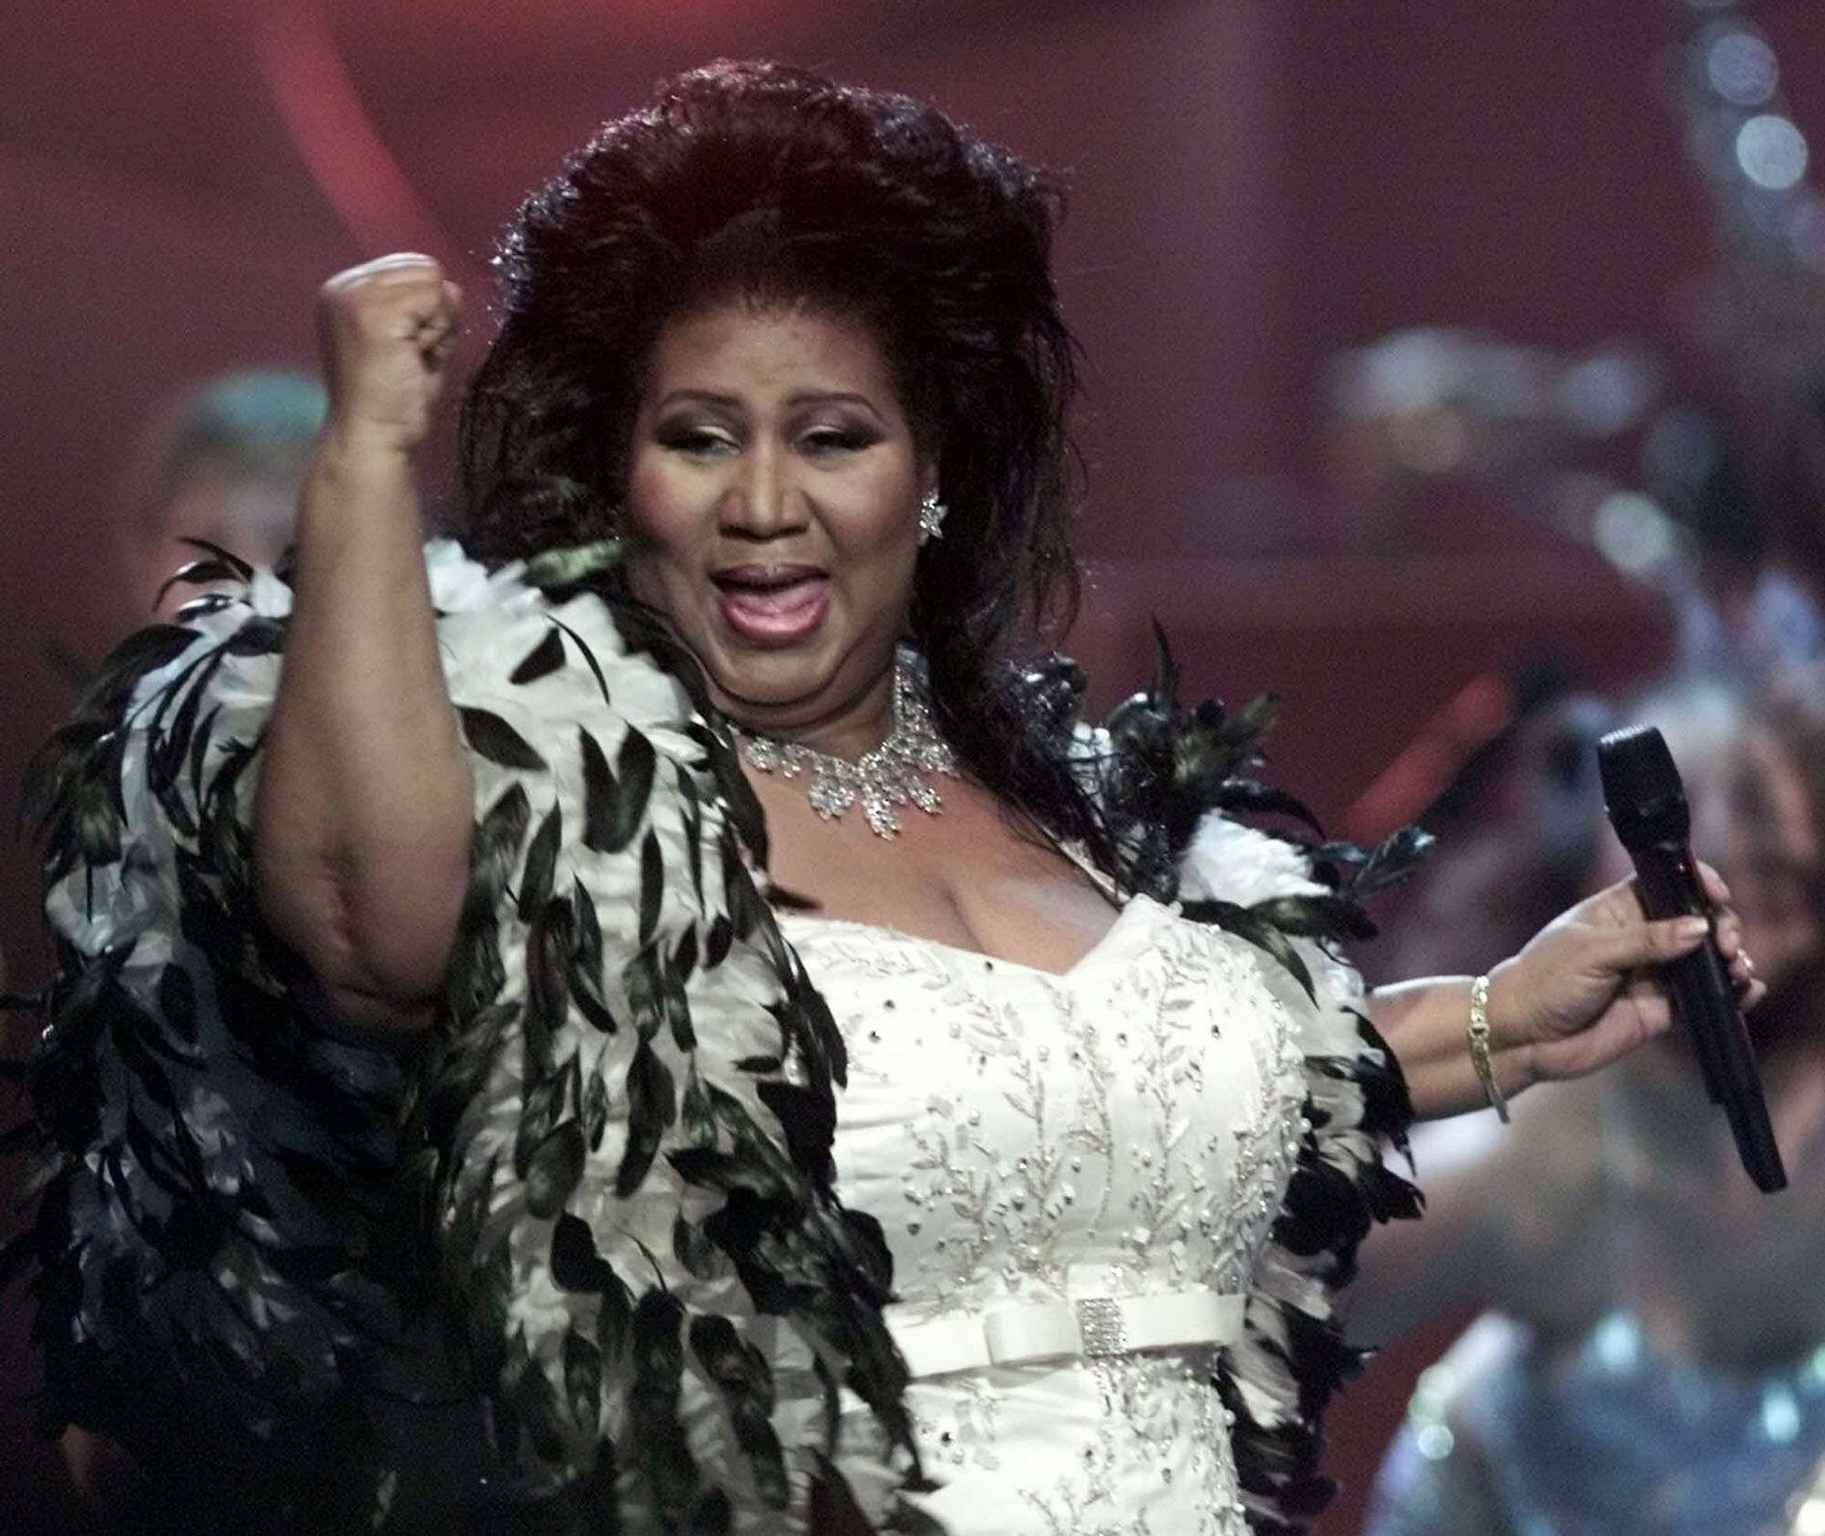 "** FILE **  Aretha Franklin the ""Queen of Soul,"" performs during the ""VH1 Divas 2001: The One and Only Aretha Franklin"" tribute in this April 10, 2001 file photo in New York. Franklin has yet to respond to a notice that her $1.6-million mansion, destroyed by a fire, violates the community's building code and must be repaired or demolished. The Jan. 22, 2003 deadline to remove debris left from the Oct. 25, 2002 blaze that destroyed most of her 10,000-square-foot mansion in Bloomfield Township, Mich. passed this week.  (AP Photo/Suzanne Plunkett, File)/PEOPLE FRANKLIN/AN APRIL 10,2001 FILE PHOTO/0301241939"